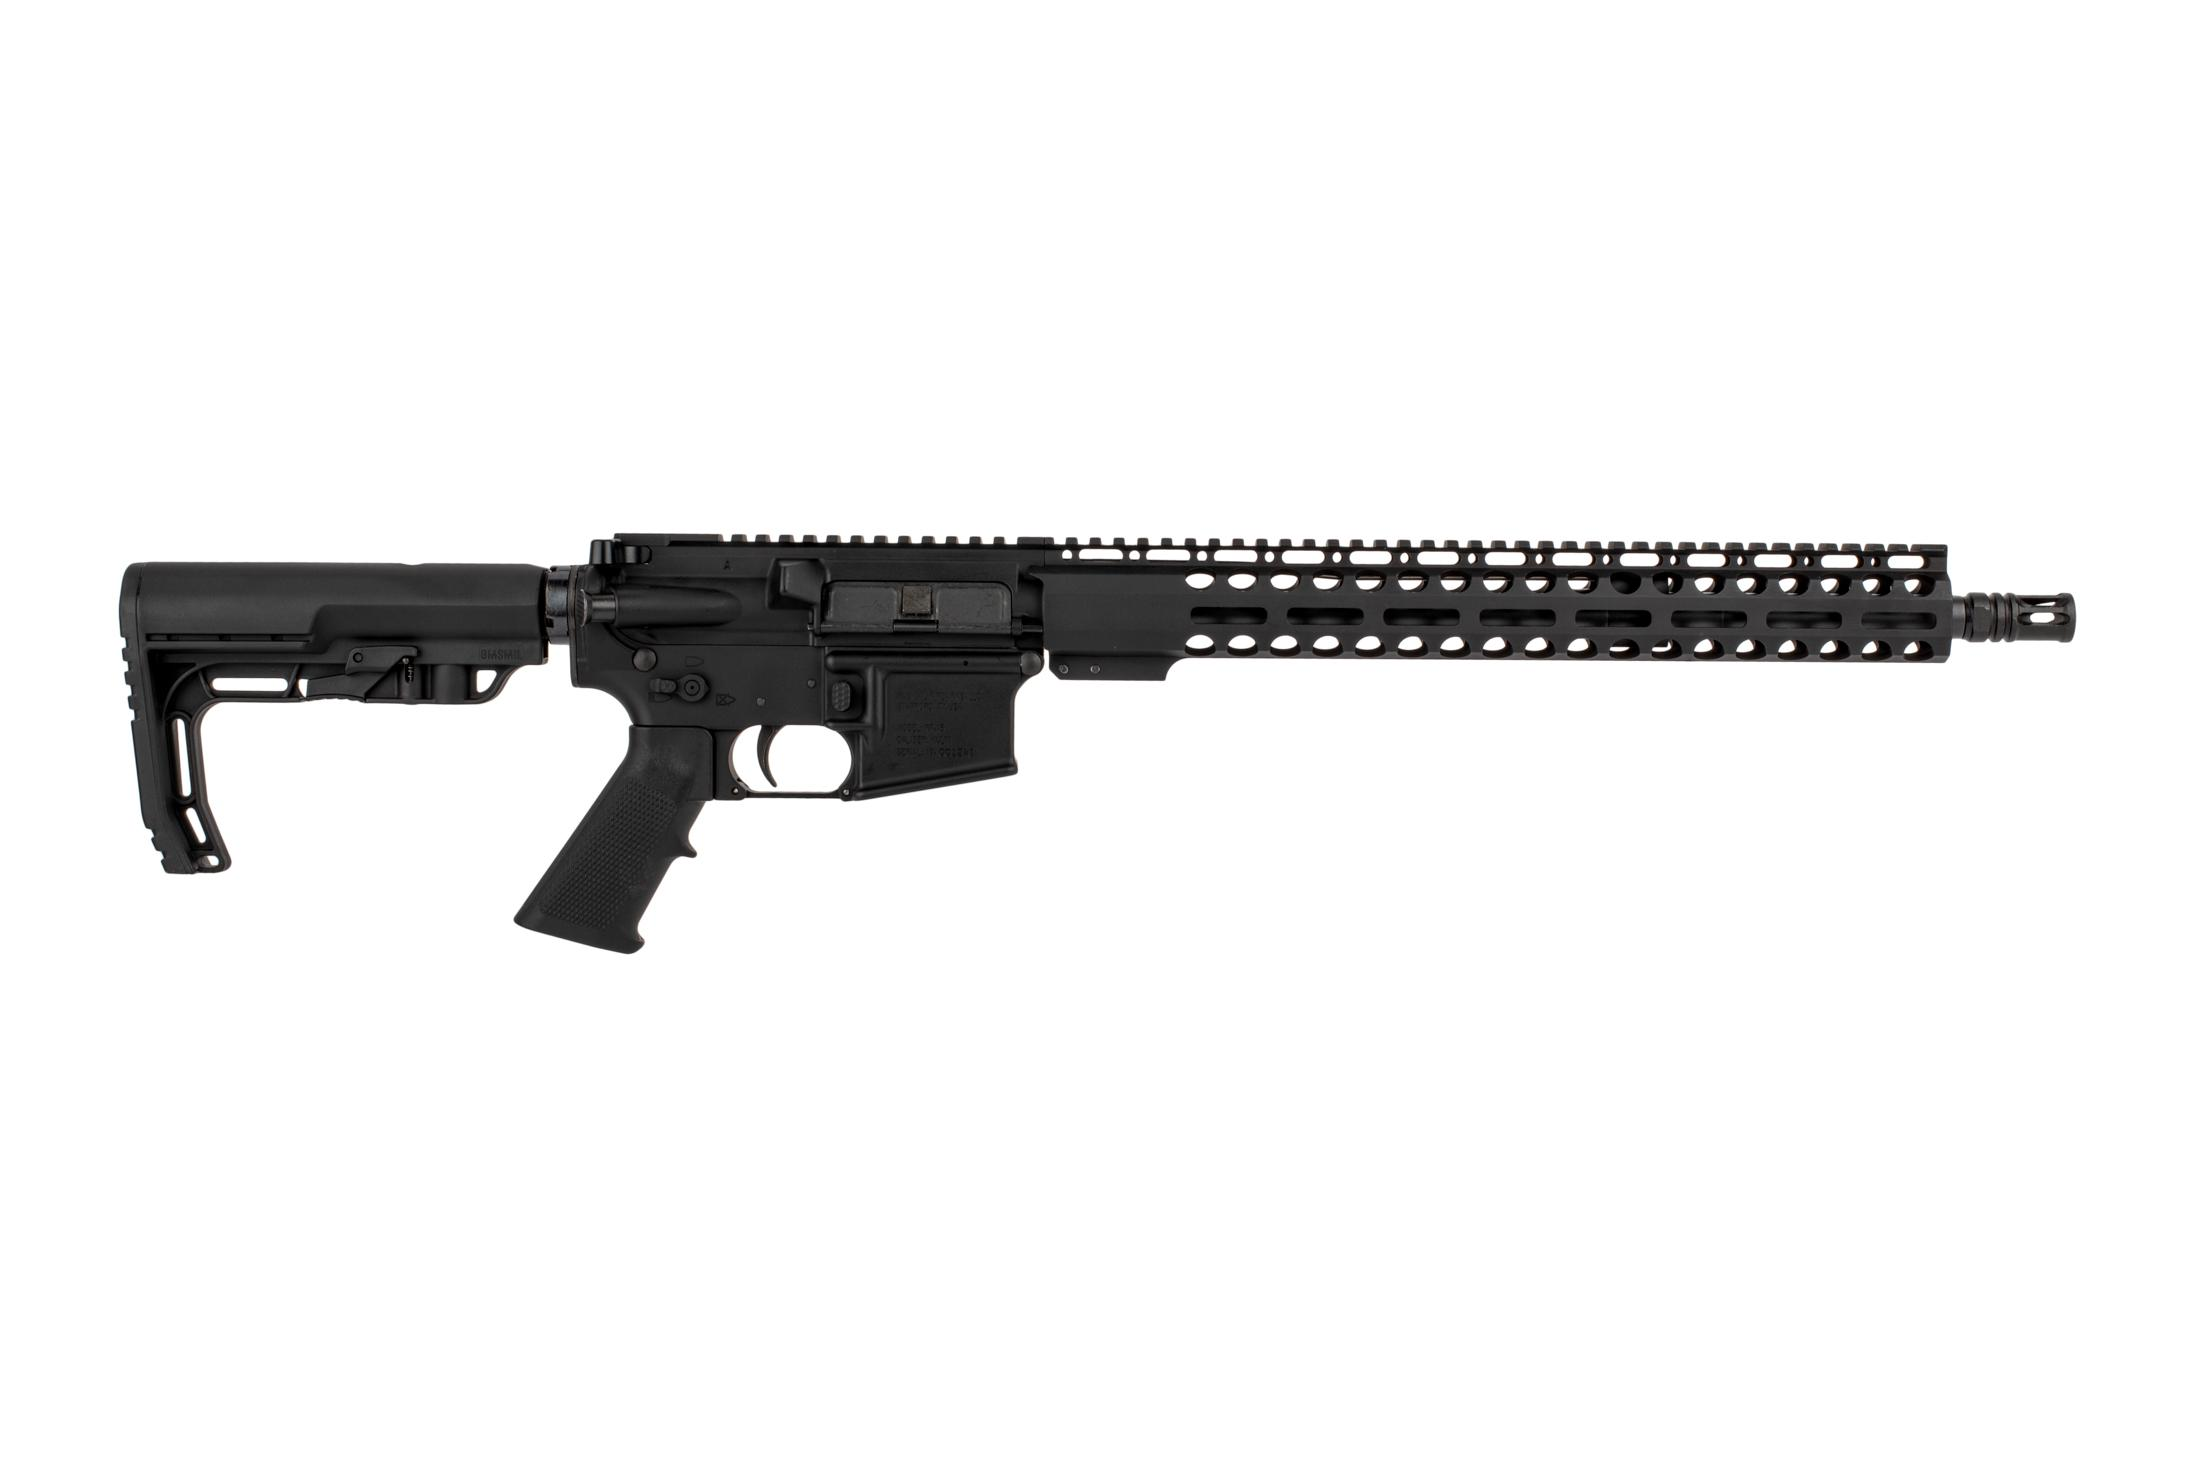 Radical Firearms 16 5.56 Mid-Length SOCOM Rifle - Primary Arms Exclusive M-LOK Rail